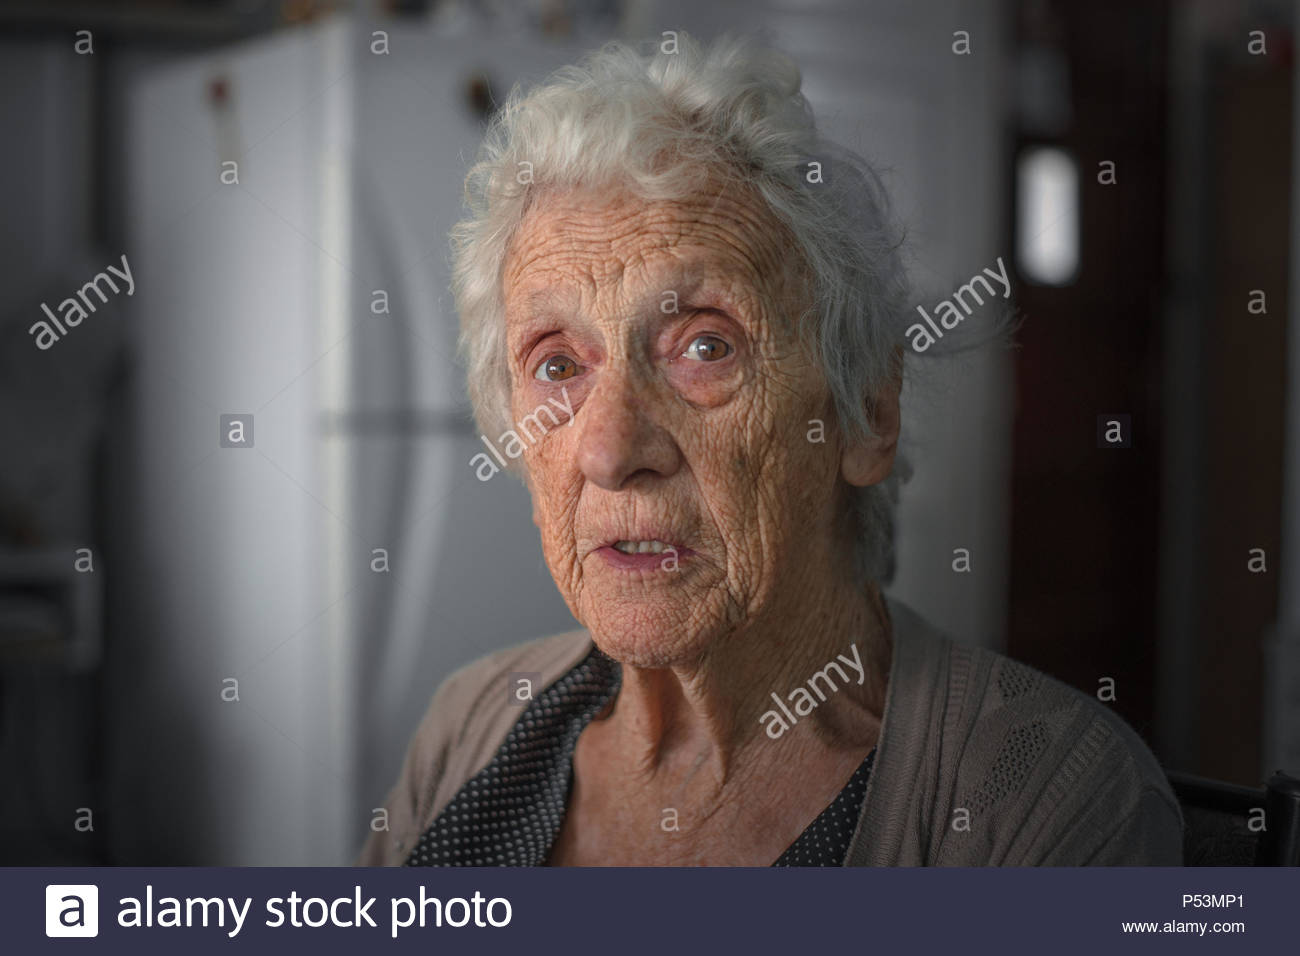 portrait - Stock Image